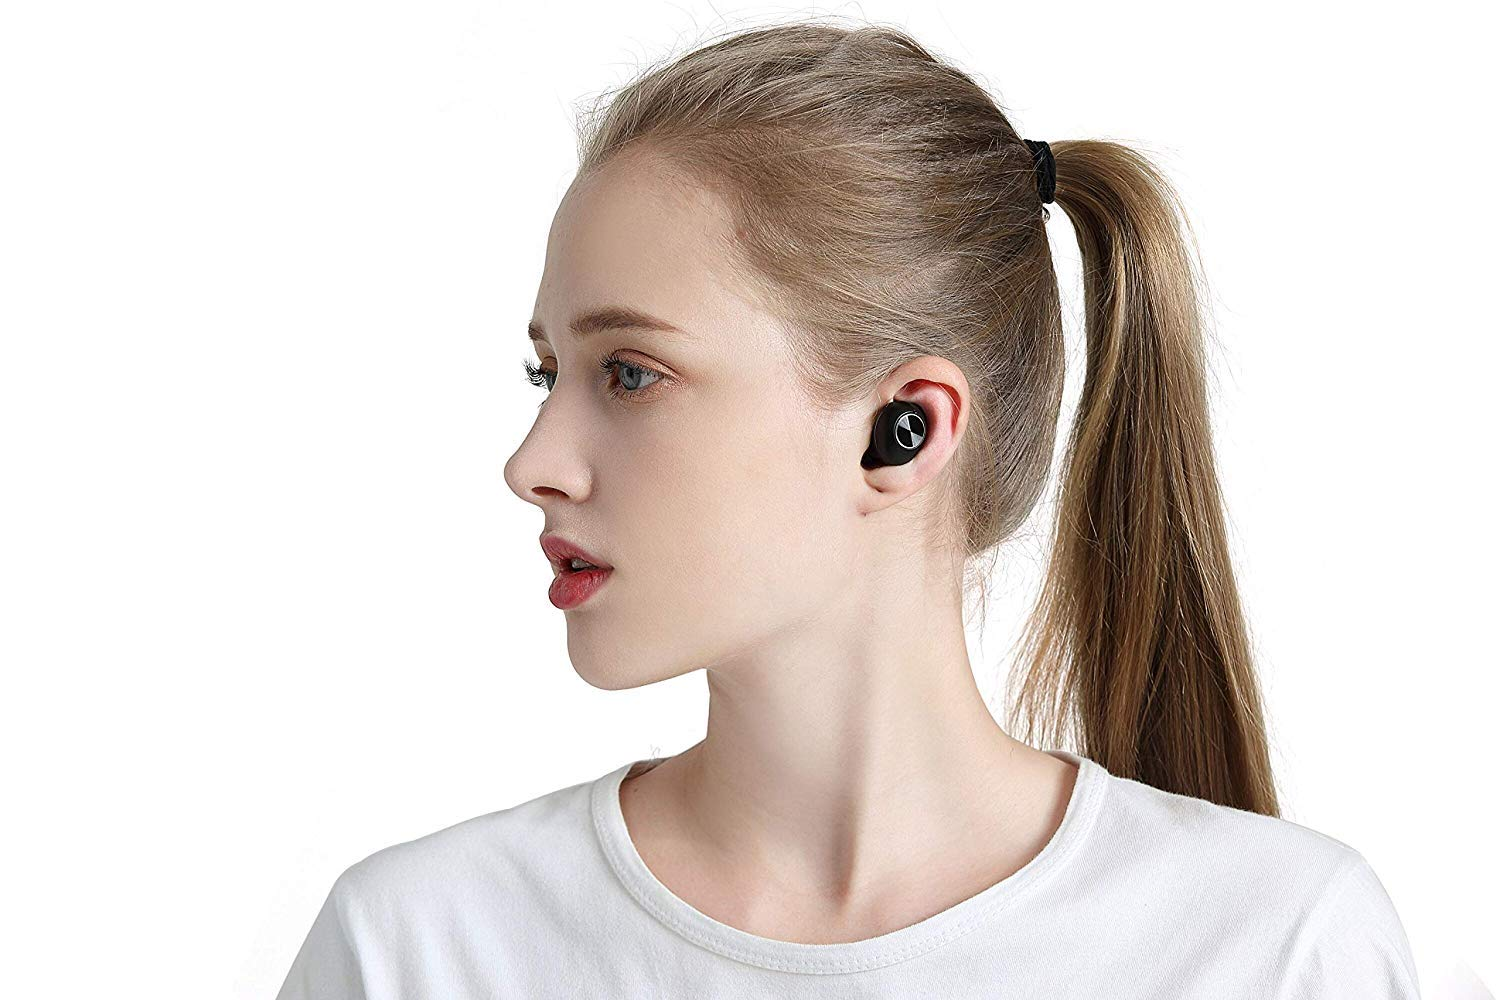 True Wireless Earbuds Bluetooth Headphones Wireless Earphones Noise Cancelling Headphones with Mic in-Ear HiFi Stereo Auto Pairing Binaural Calls 20h Playtime Portable Charging Case SeeYing L18